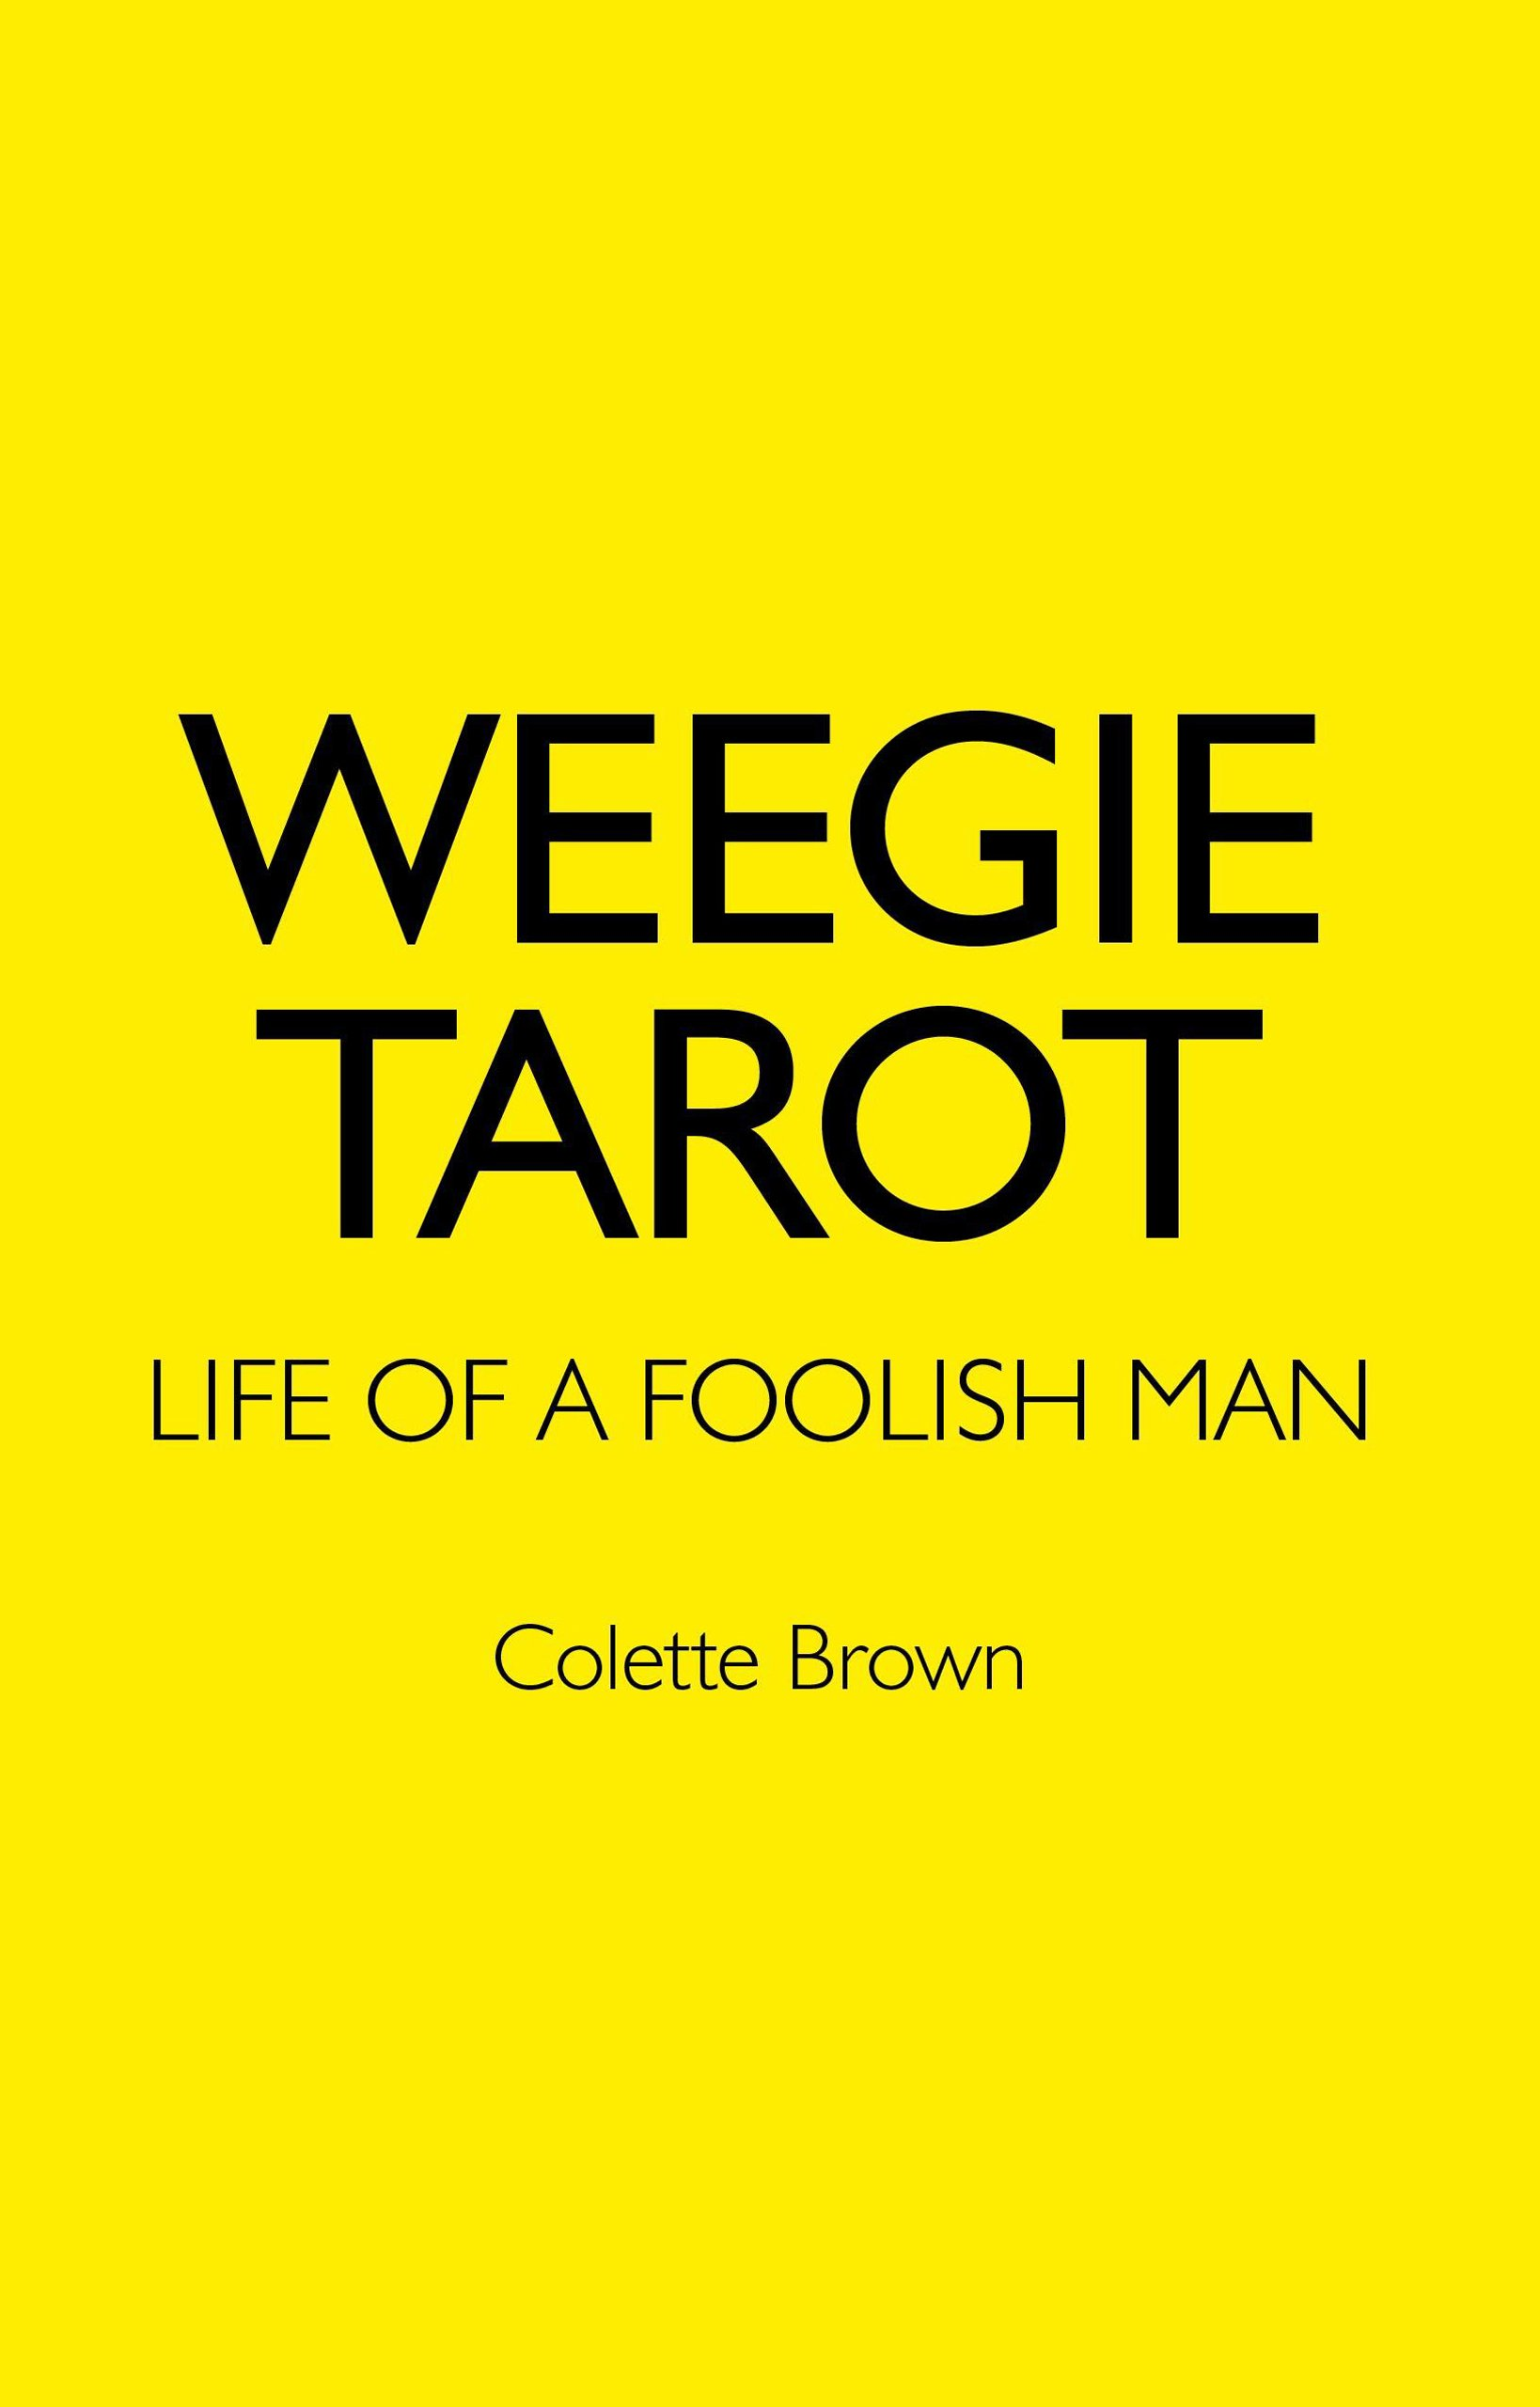 Weegie Tarot Life Of A Foolish Man Colette Brown 9781780992679